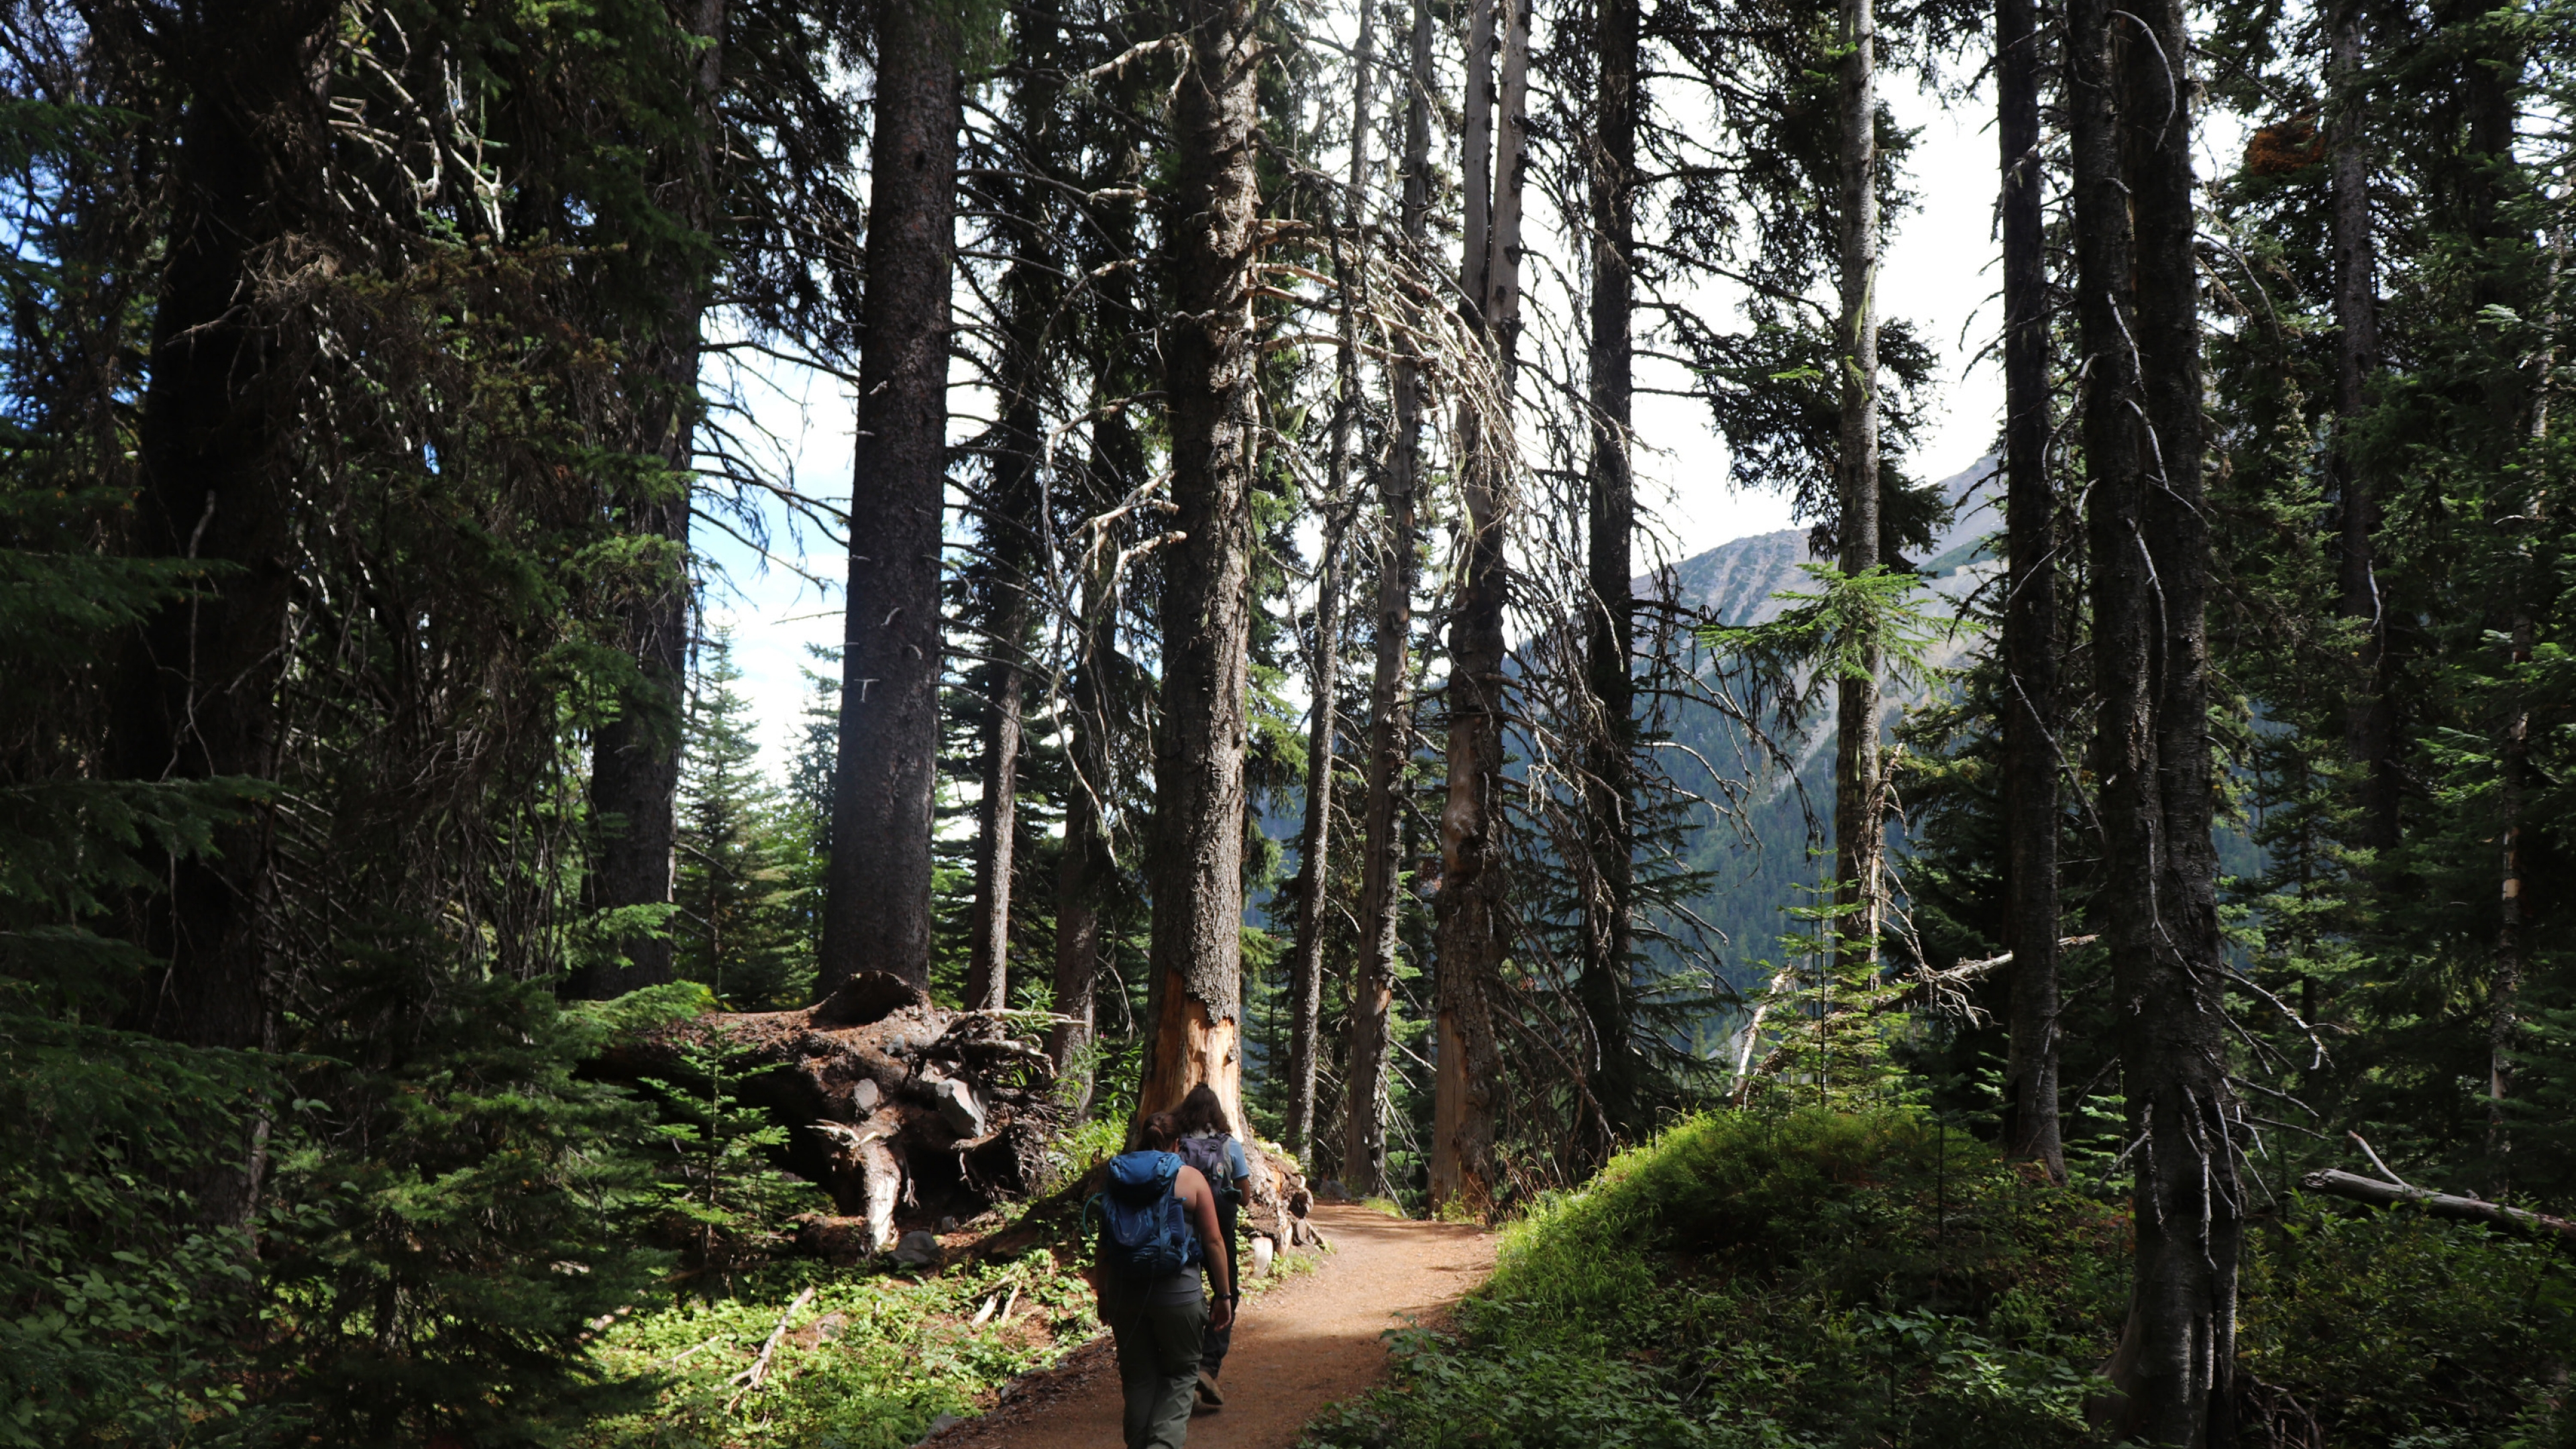 Two hikers walk along a dirt path surrounded by an old-growth forest.